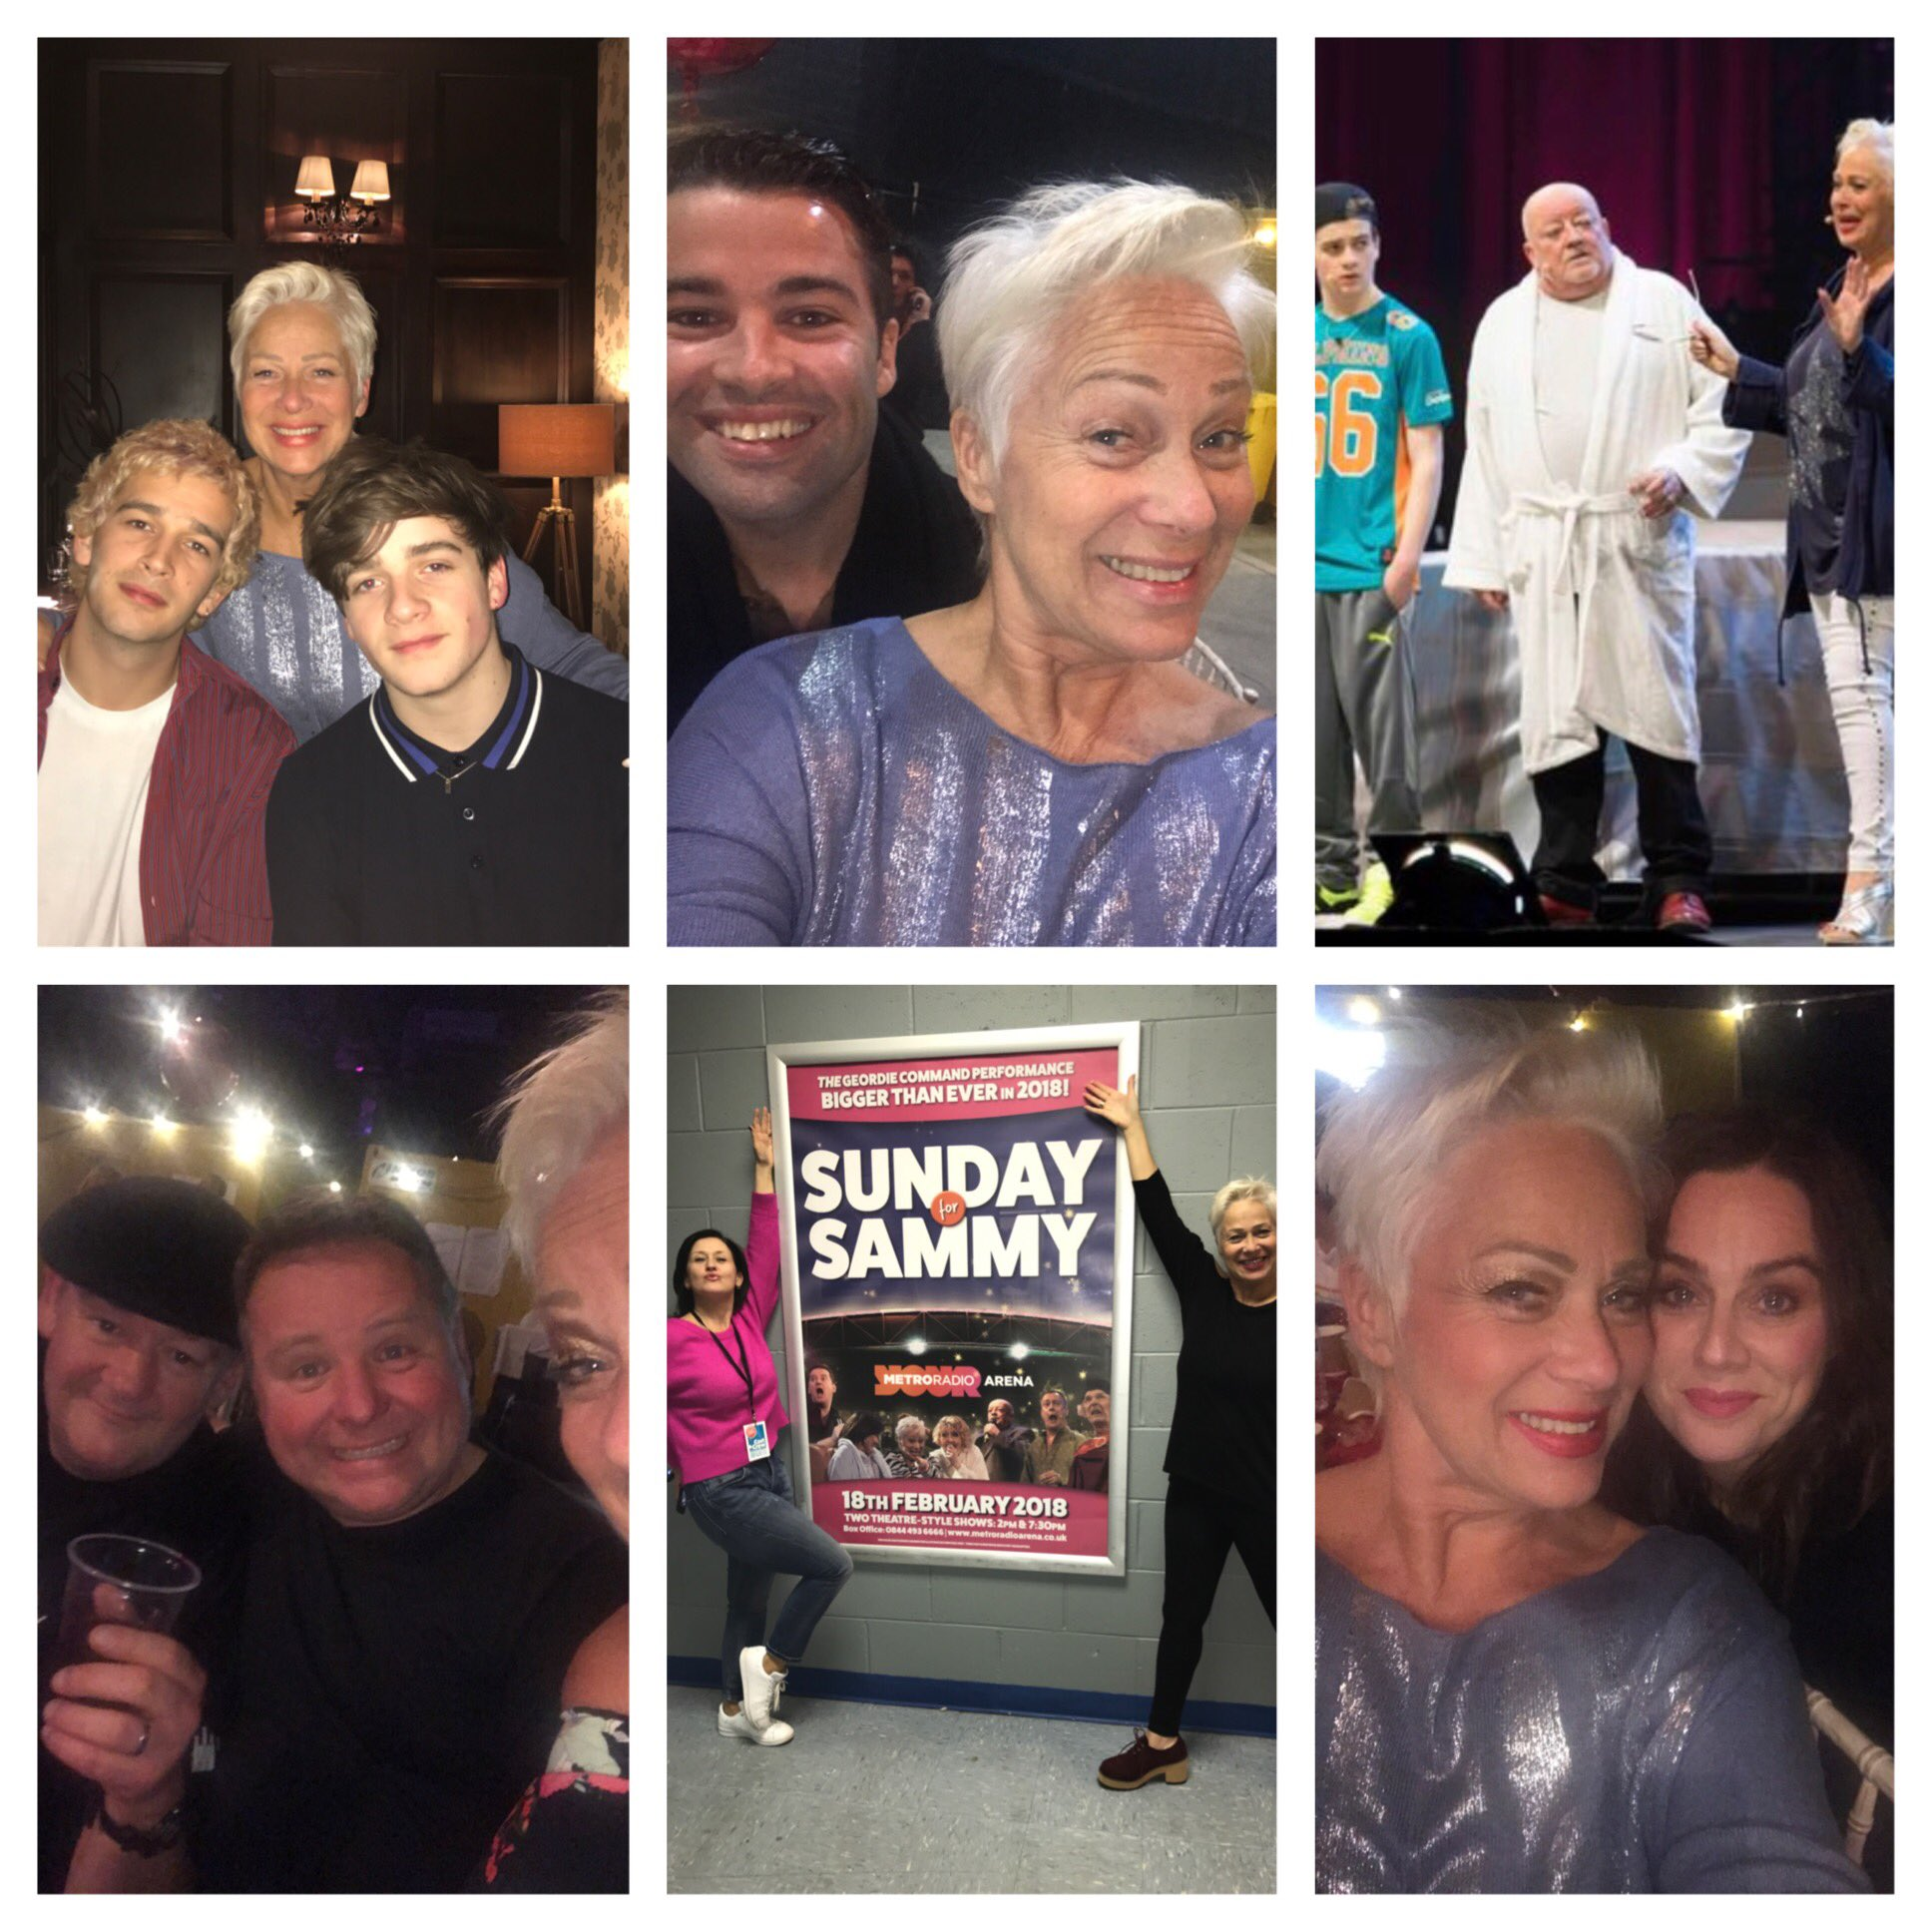 Some wonderful moments from @sundayforsammy last night! Never read such amazing comments!!! 👏👏❤️❤️ https://t.co/piEXsnwIam